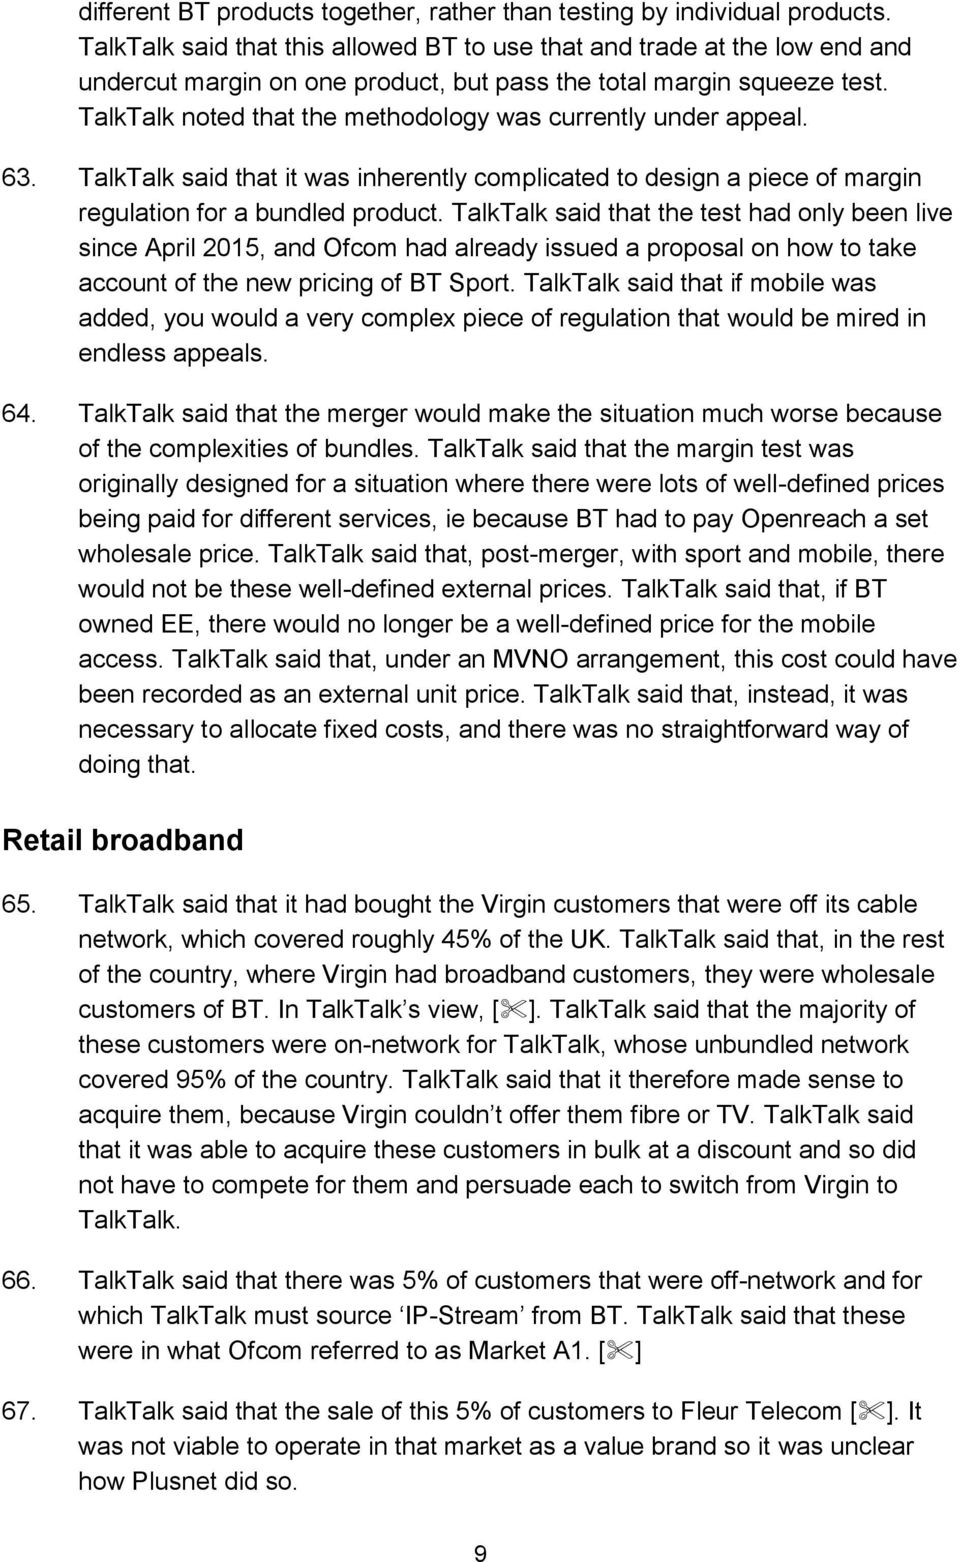 TalkTalk noted that the methodology was currently under appeal. 63. TalkTalk said that it was inherently complicated to design a piece of margin regulation for a bundled product.